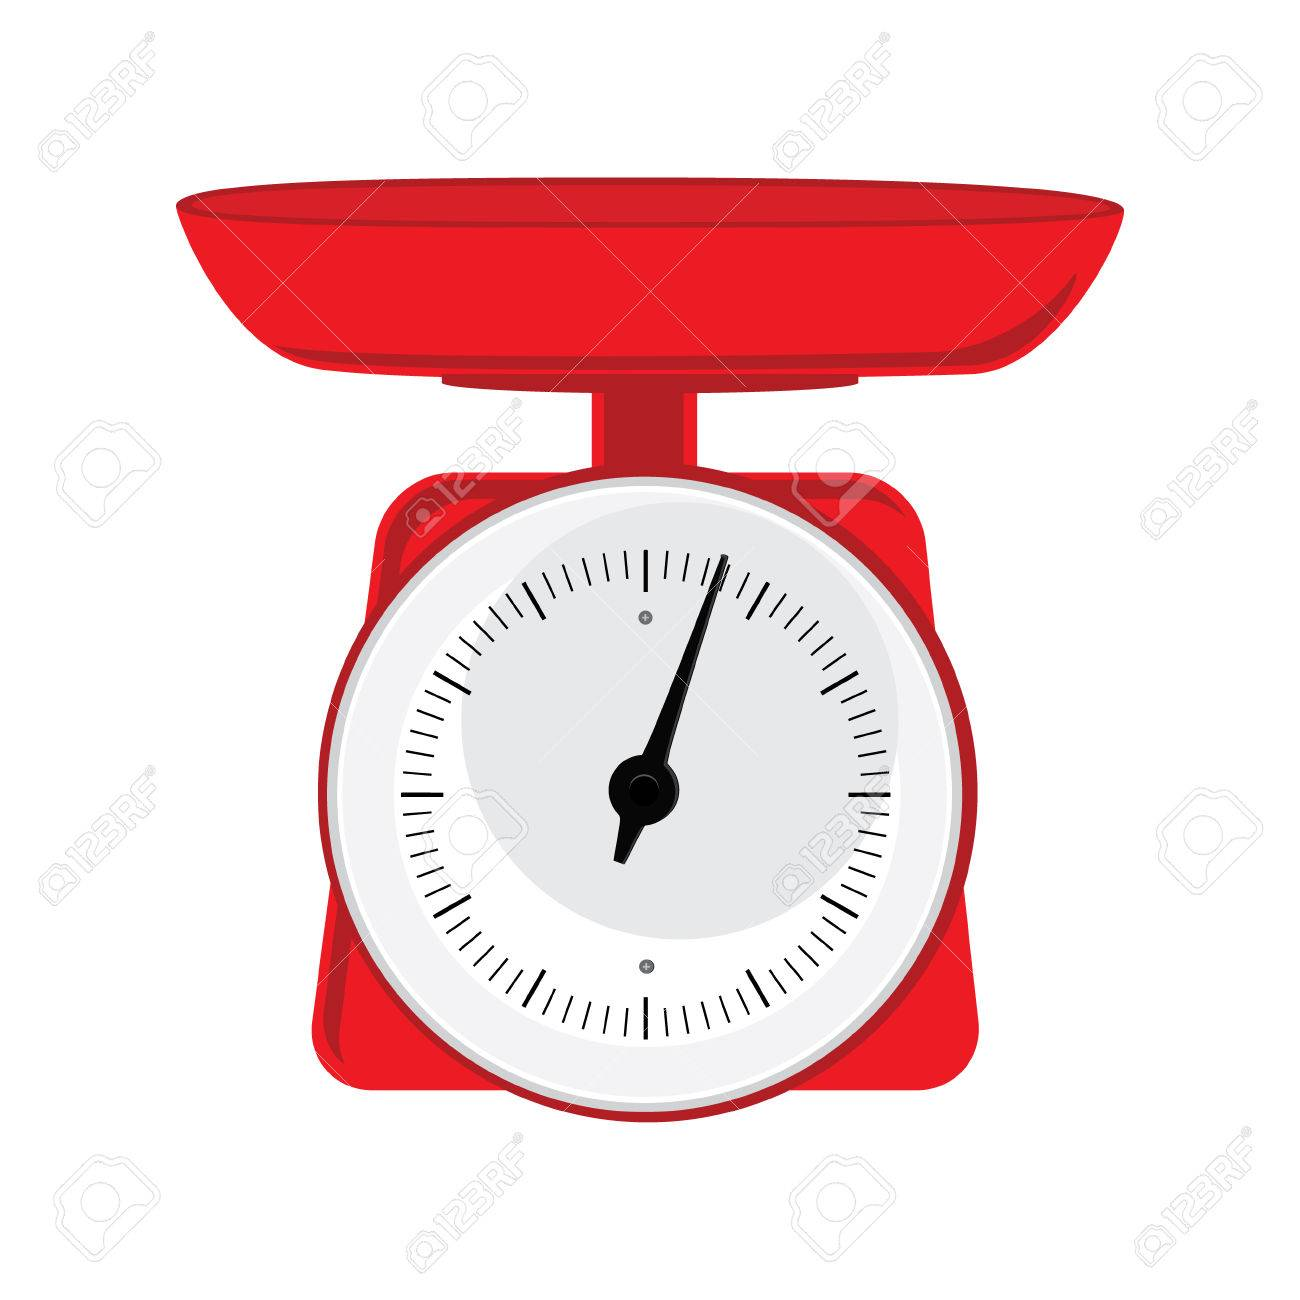 Vector illustration red weight scale on white background. Weighing...